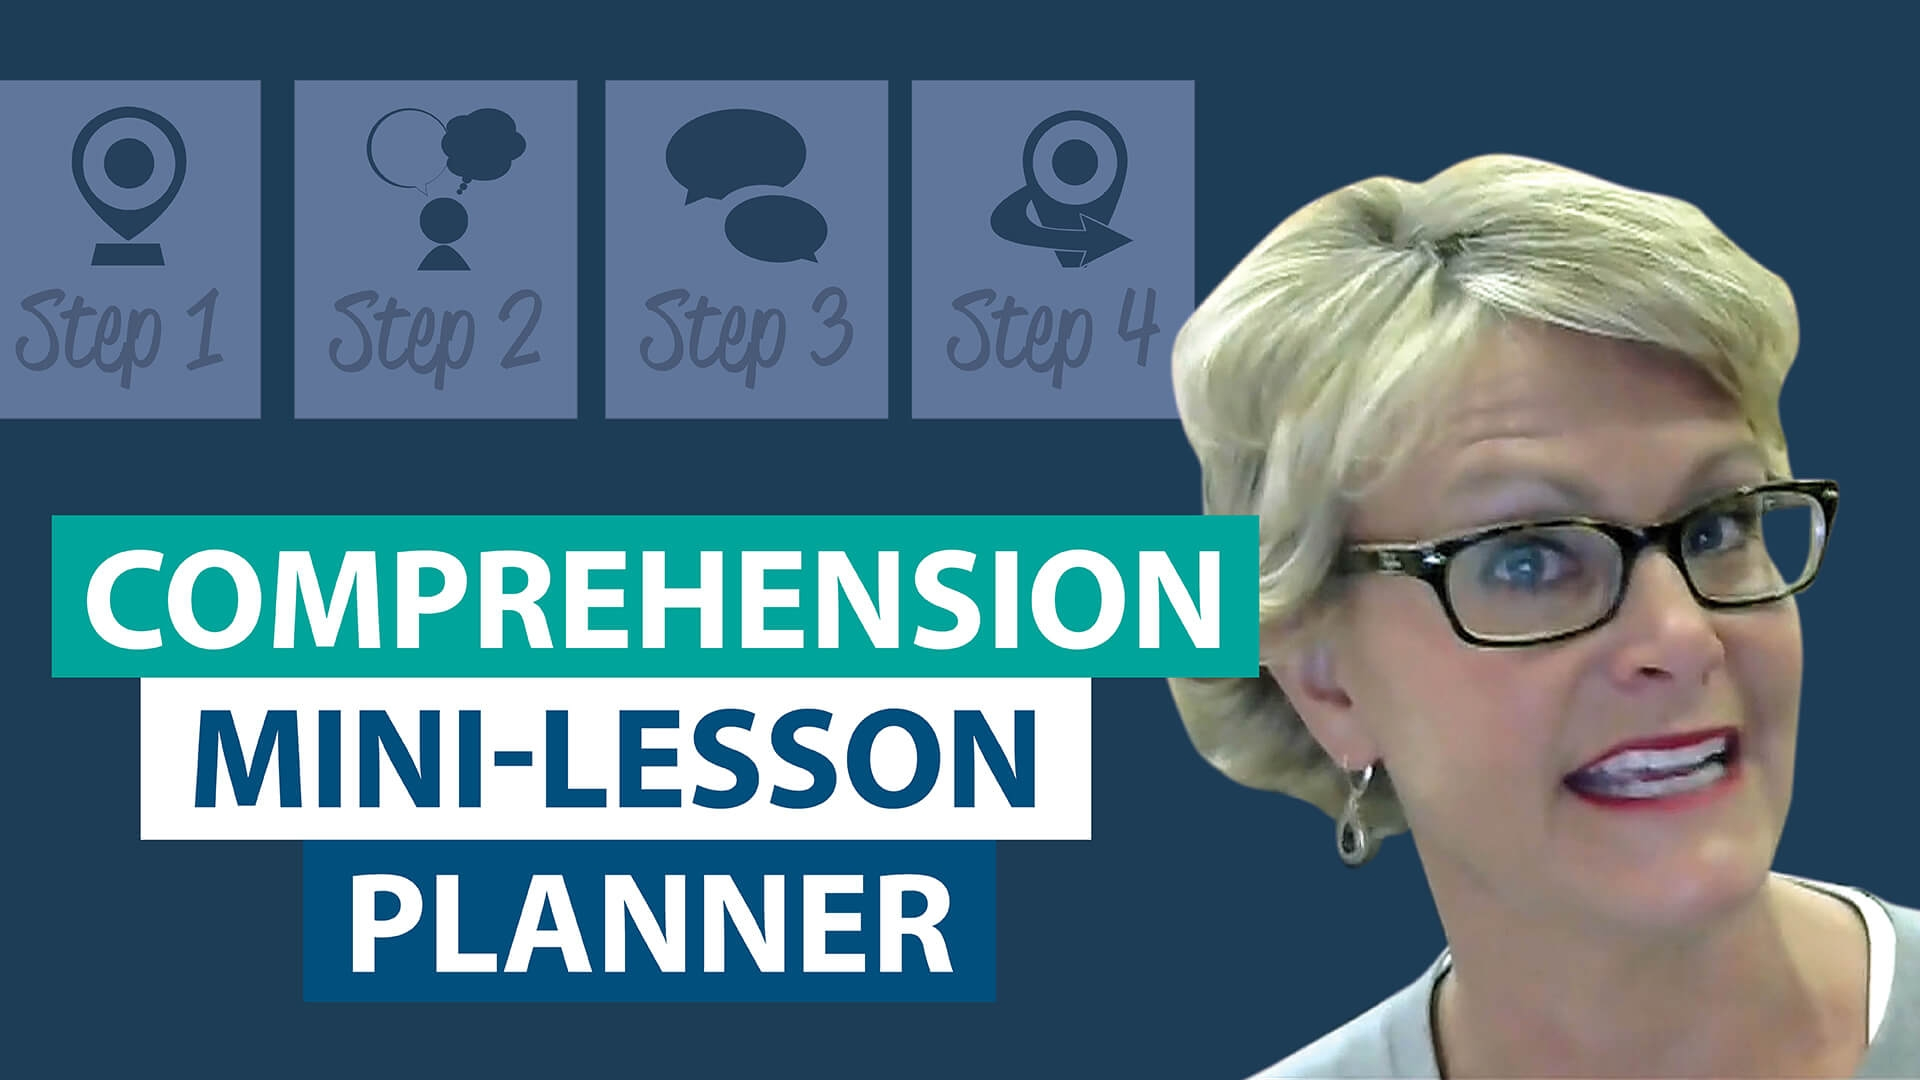 How do I plan a comprehension mini-lesson?